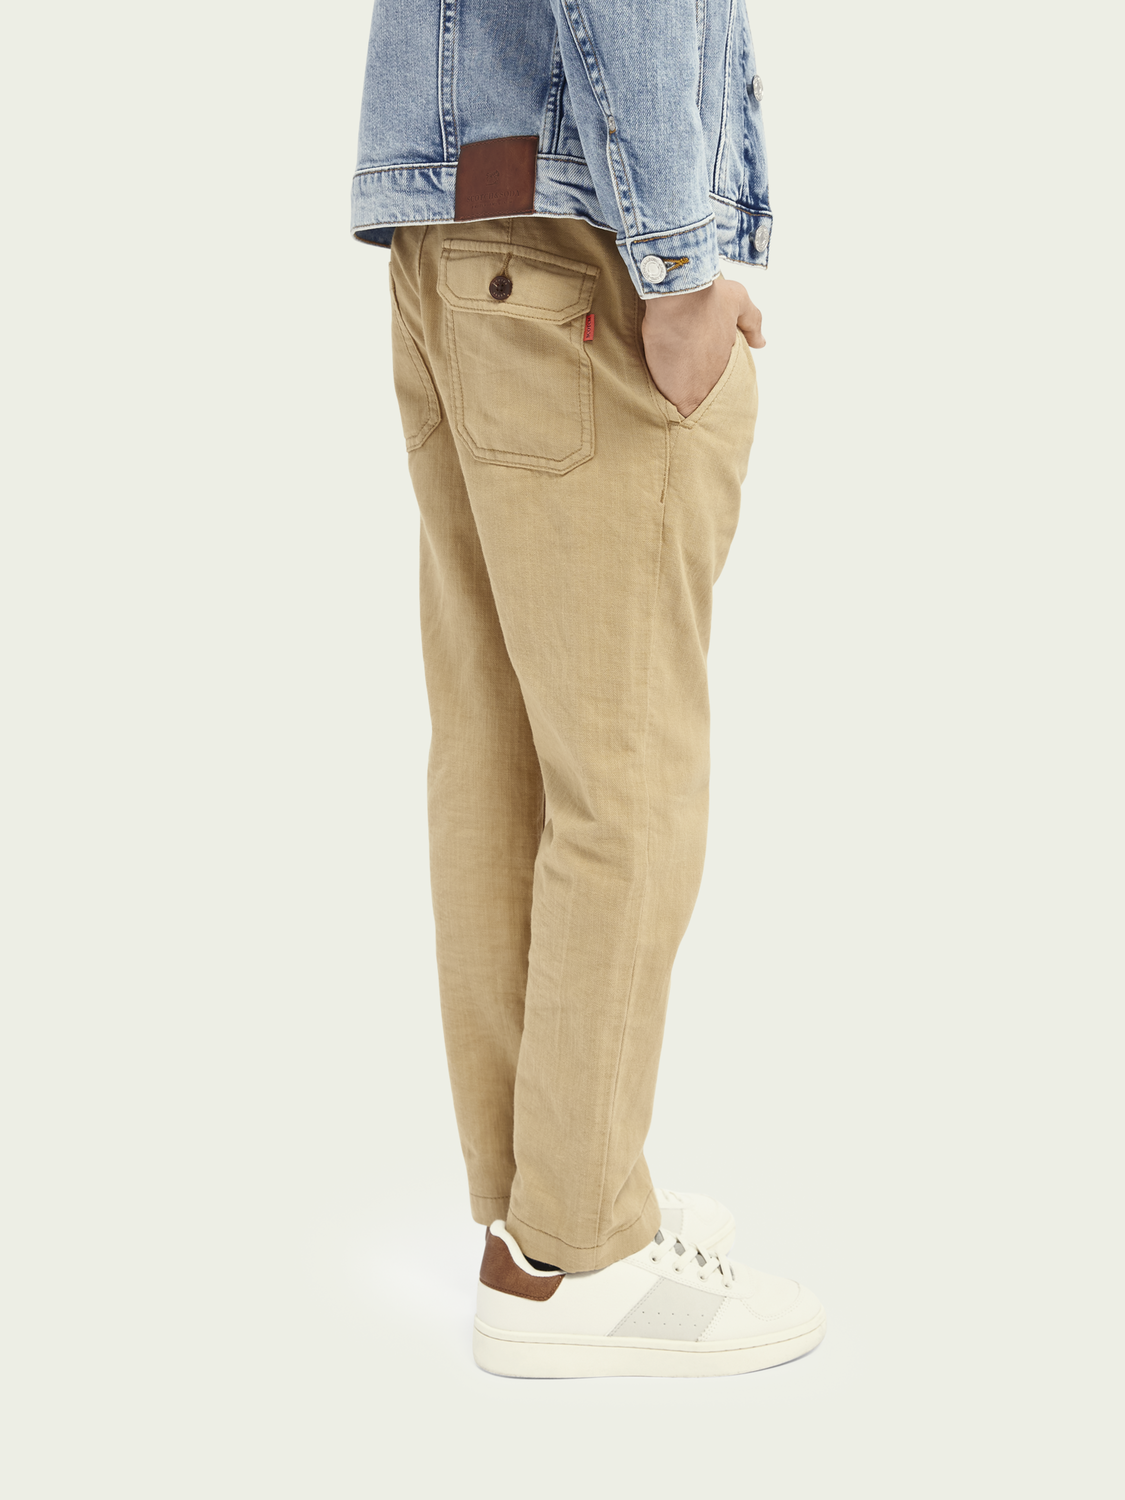 Kinder Worker-Hose im Loose Tapered Fit